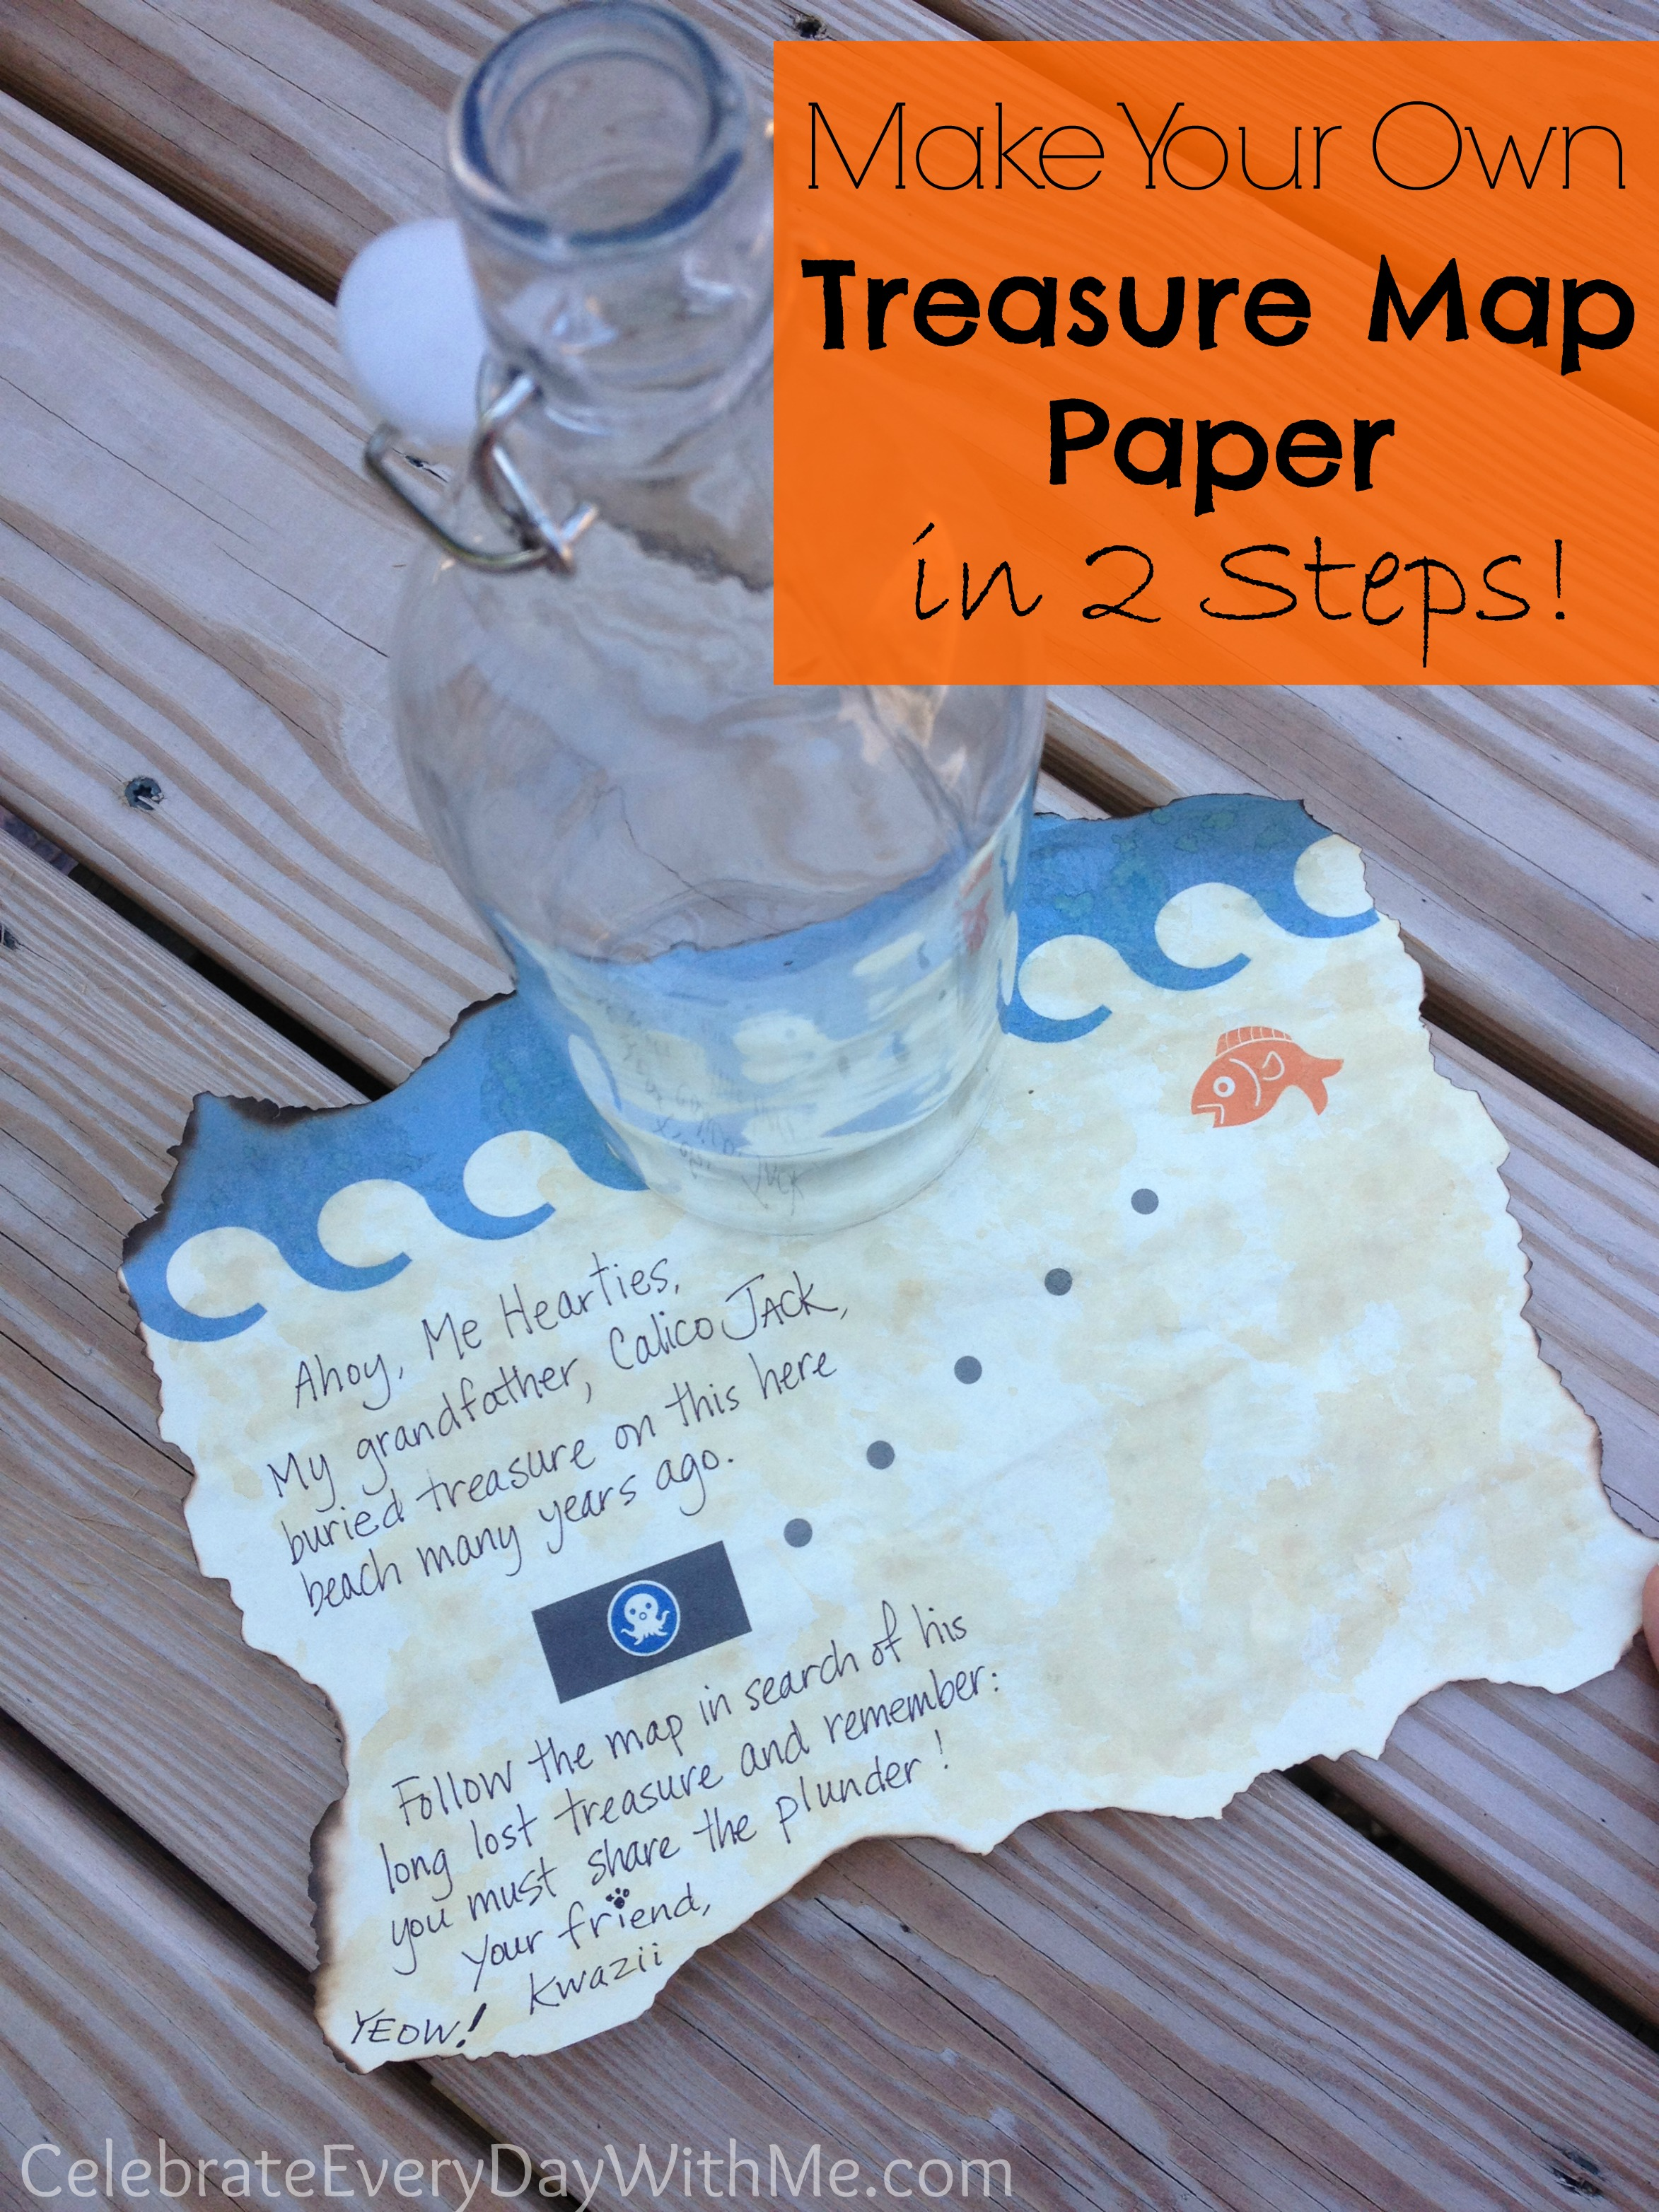 Make Your Own Pier 1 Rope Lamp Knock Off: How To Make Treasure Map Paper In 2 Steps!